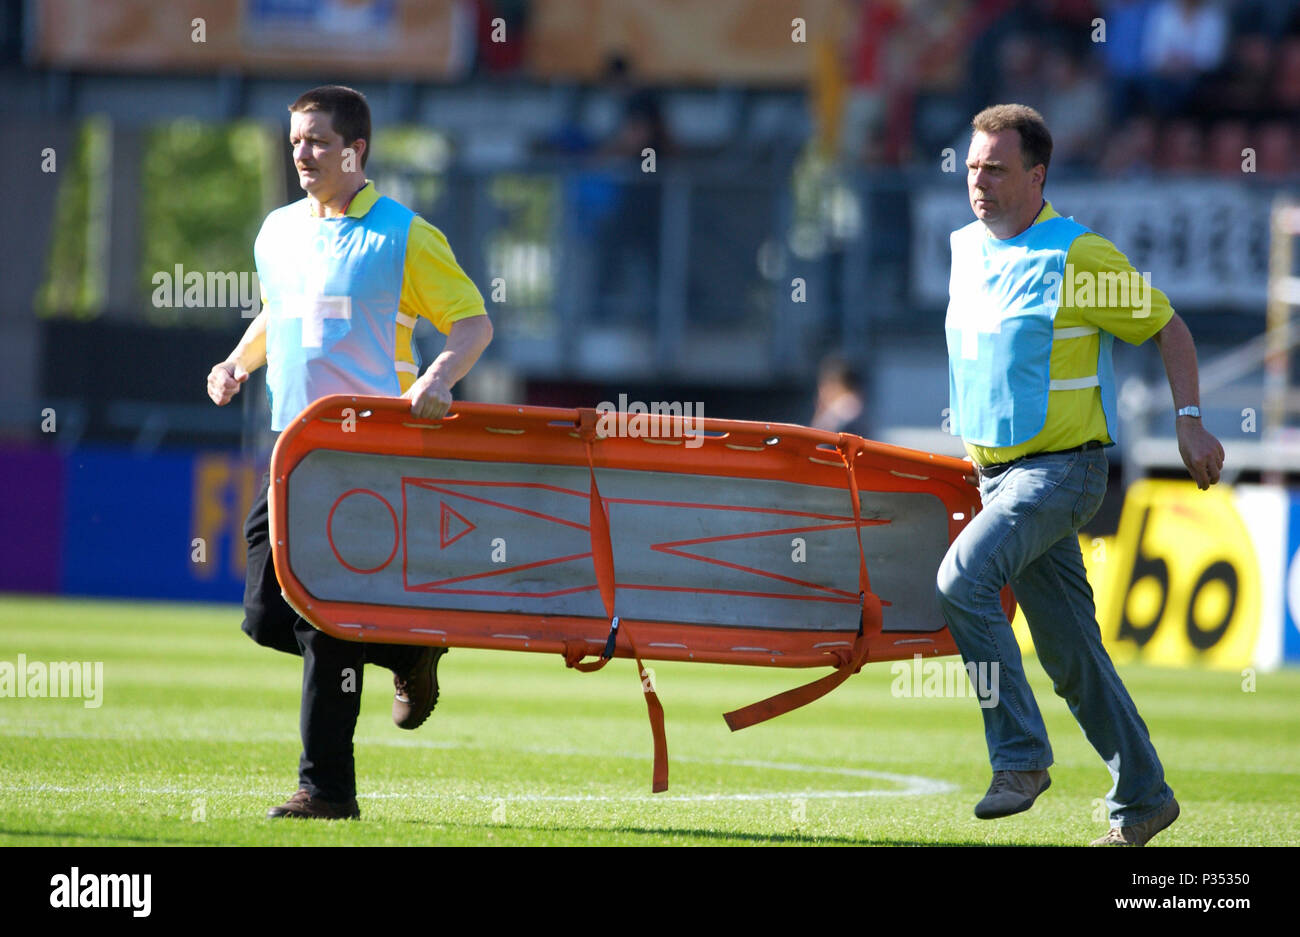 Arke Stadion Enschede, The Netherlands 14.6.2005, FIFA World Youth Championship, Egypt - Argentina 0:2 ---  paramedics with stretcher - Stock Image